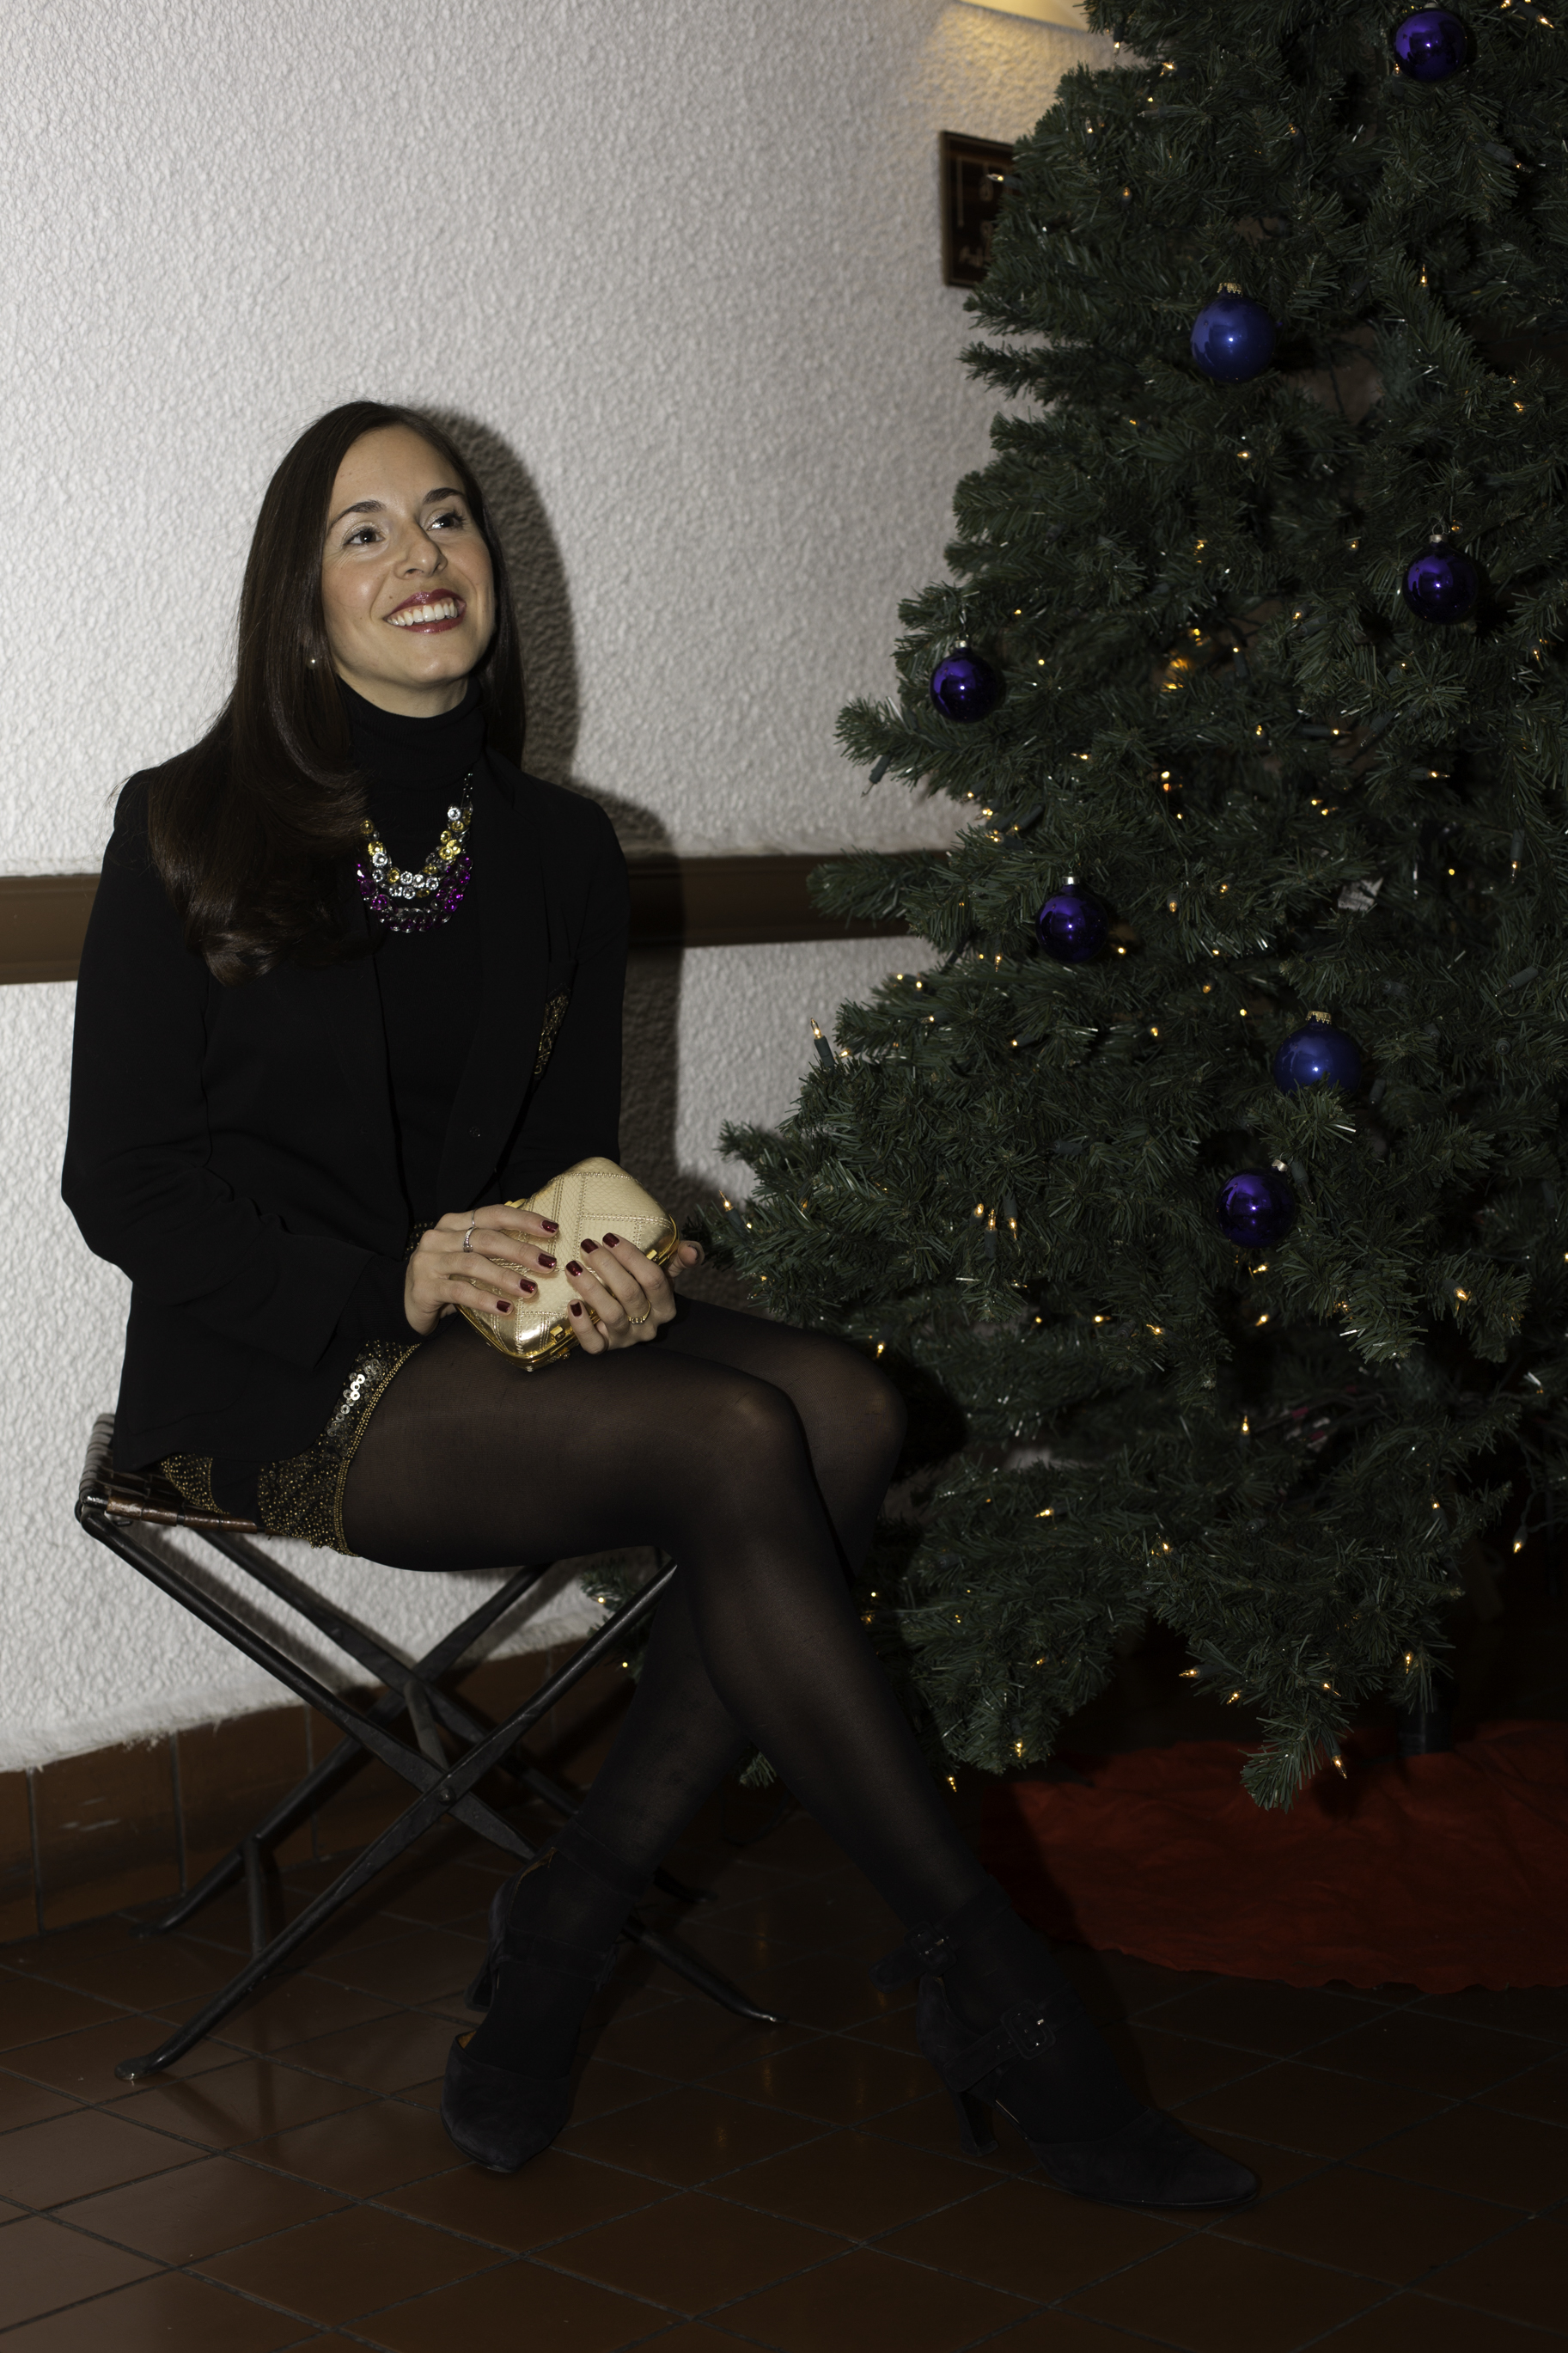 Sitting by the tree at a holiday party wearing my  Ralph Lauren  black with gold crest blazer, a  Zara  black turtleneck, gold  Topshop  sequin mini skirt, black tights, and vintage black suede pumps. My gold clutch is a  Coach  python holiday clutch. Photography by  Francisco Graciano .